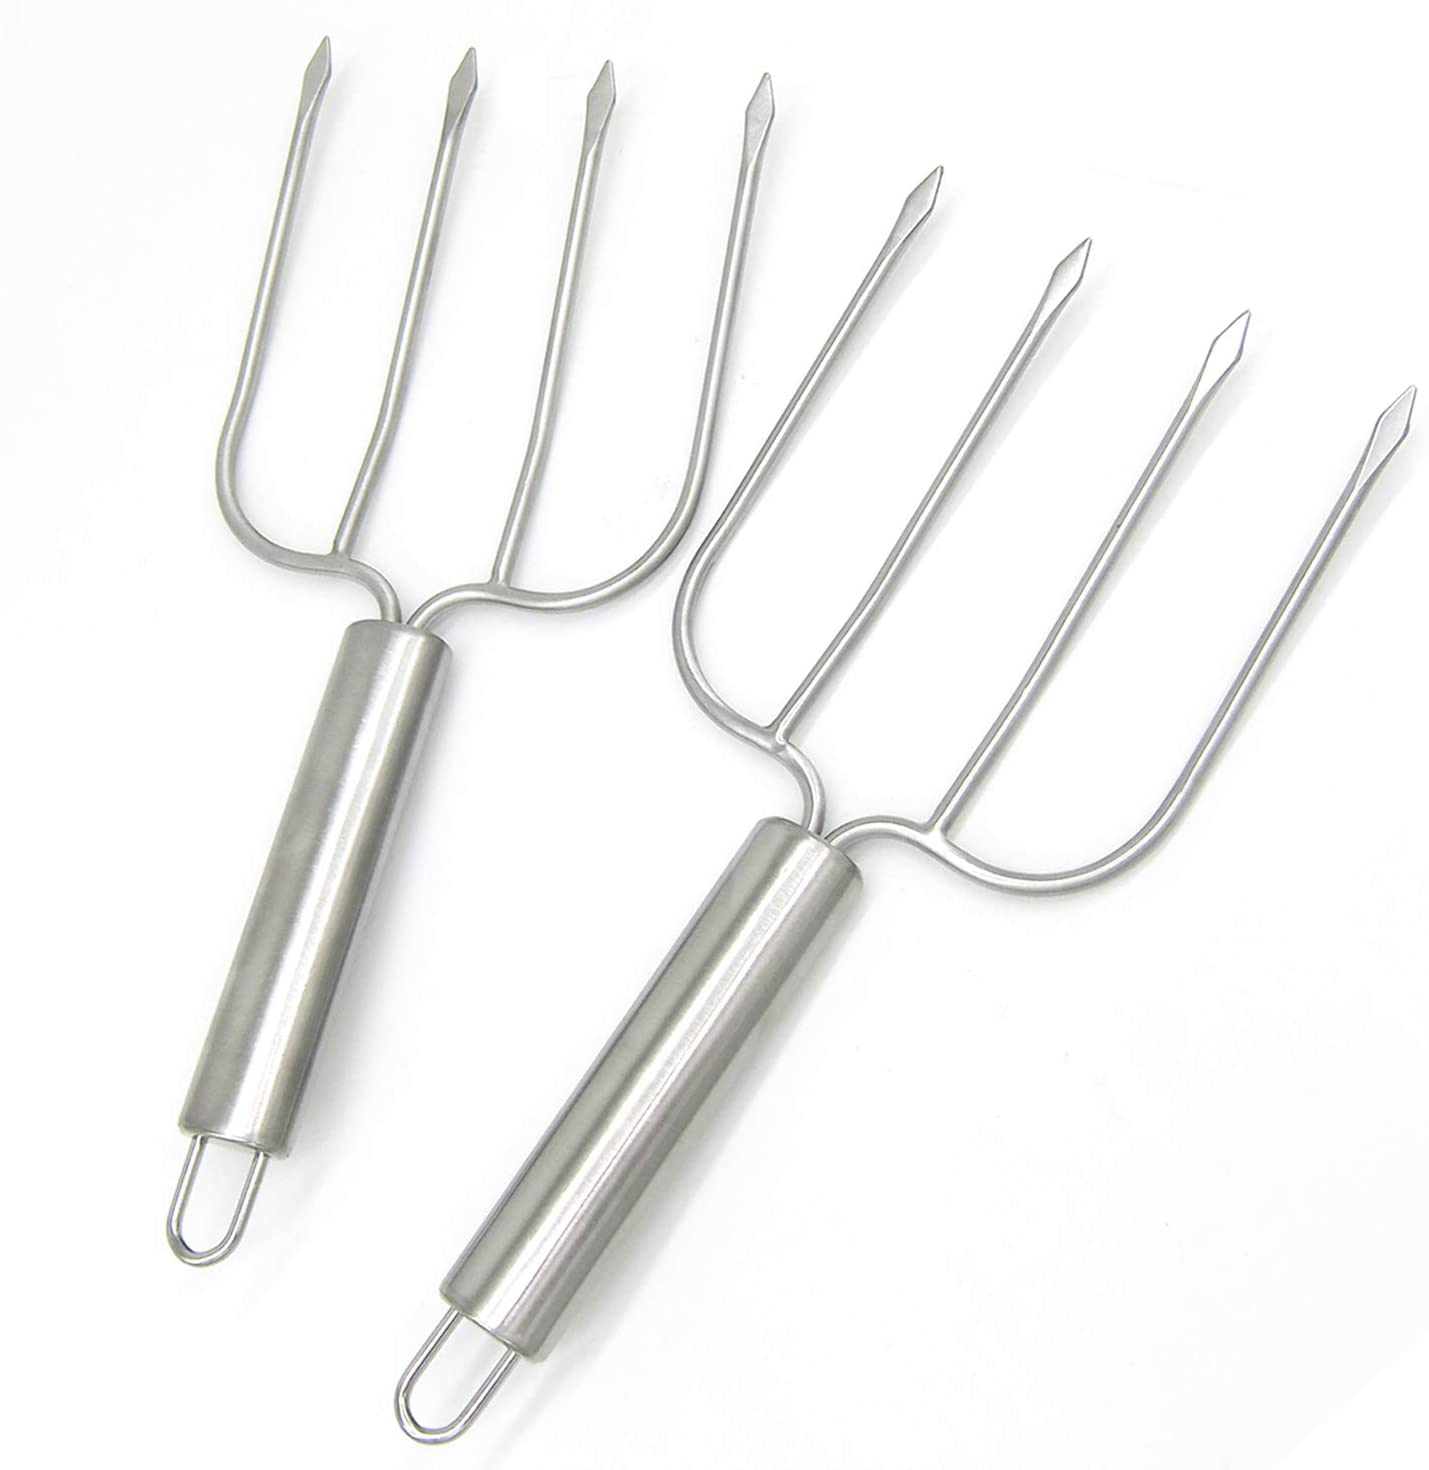 KAYCROWN Turkey Lifter Forks Set of 2 Stainless Steel Turkey Lifters Turkey and Poultry Lifters Turkey Claws Carving Fork